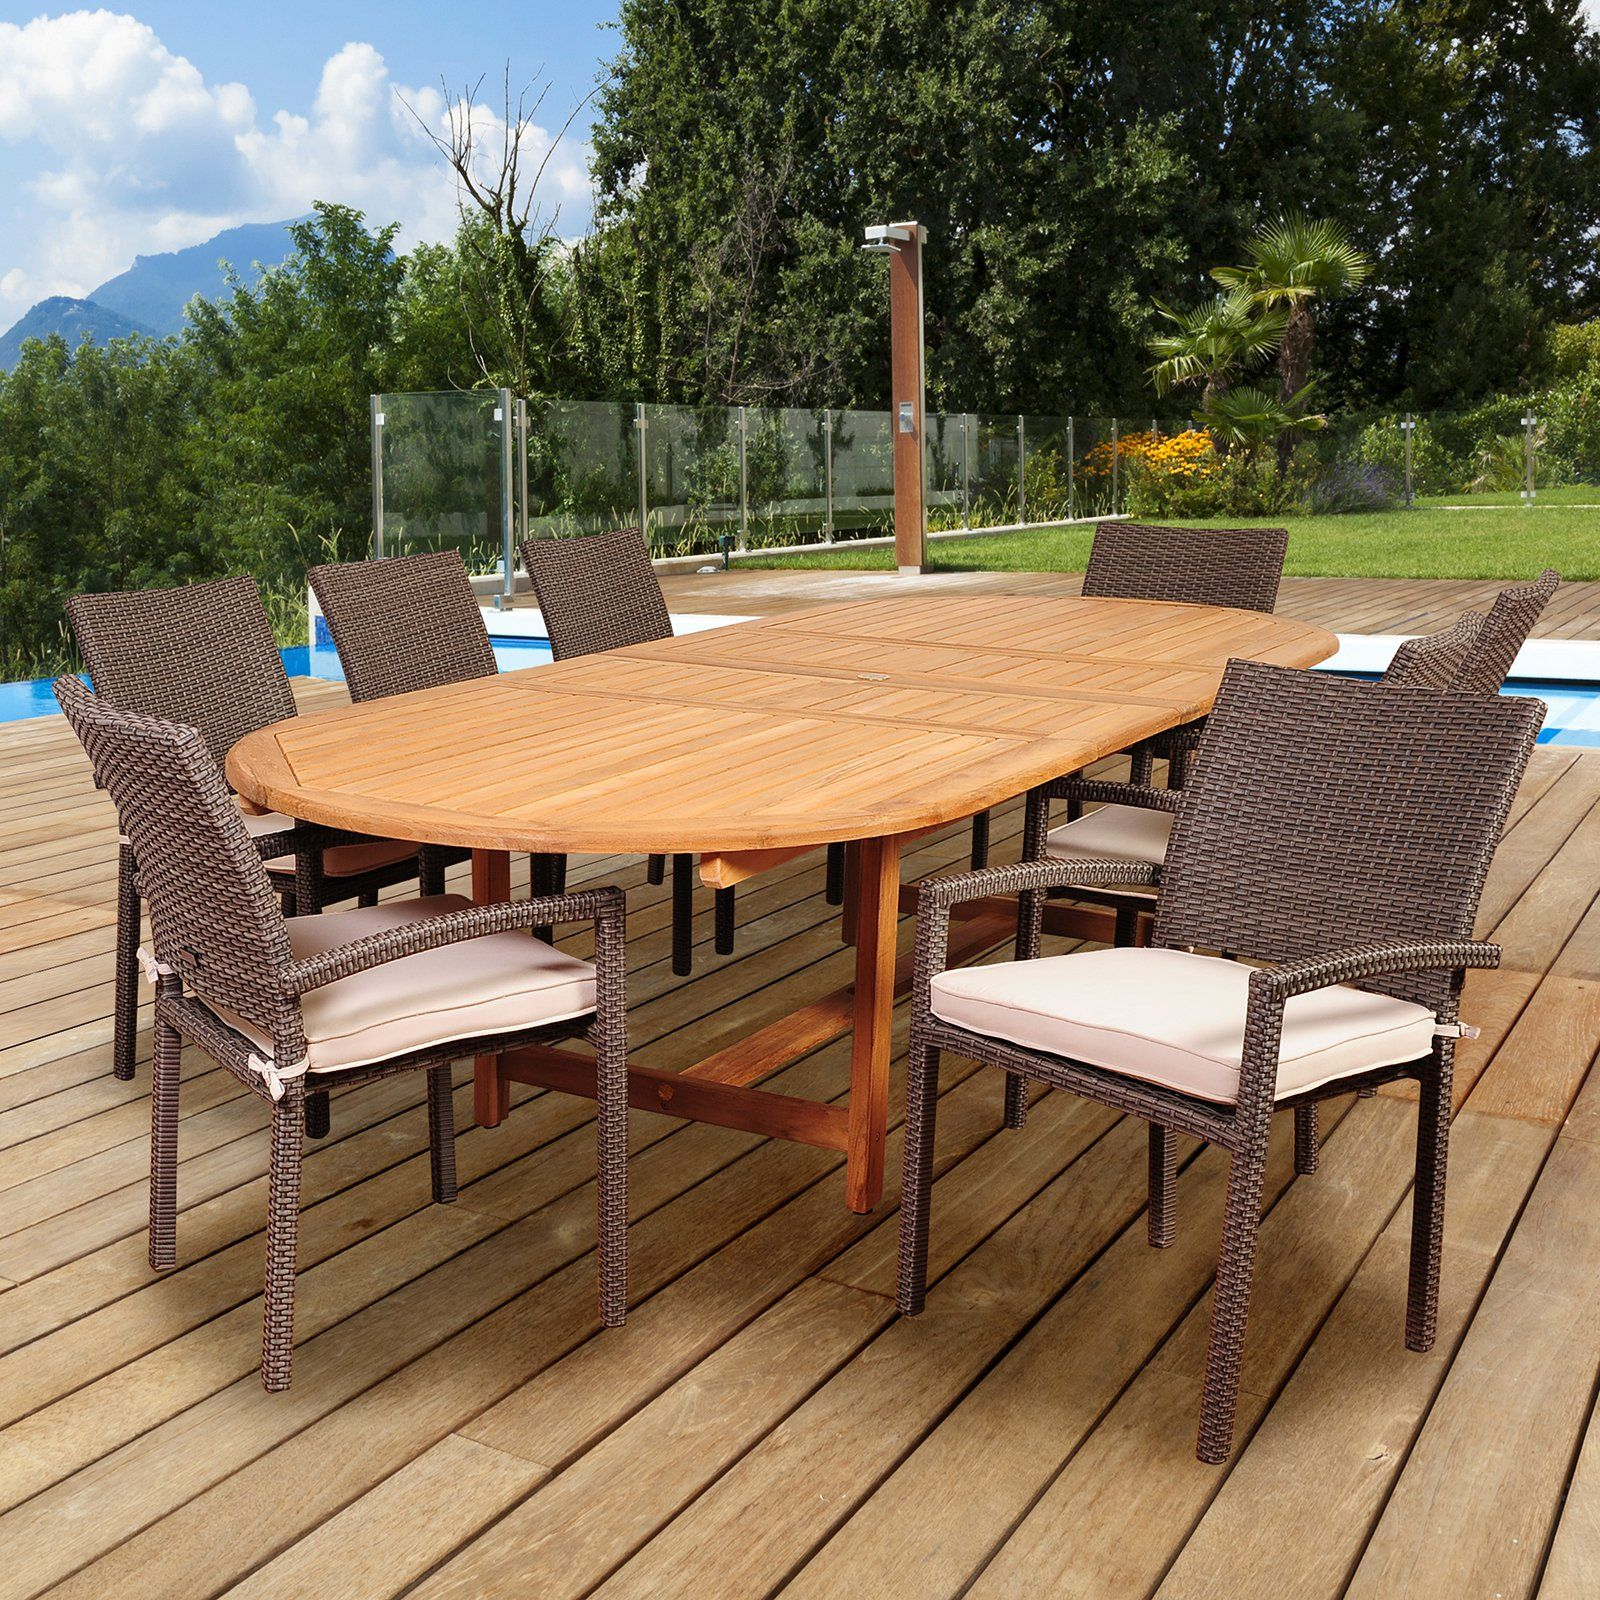 Vermont Extendable Garden Table And Chair Set: Outdoor Amazonia Indianapolis 9 Piece Double Extendable